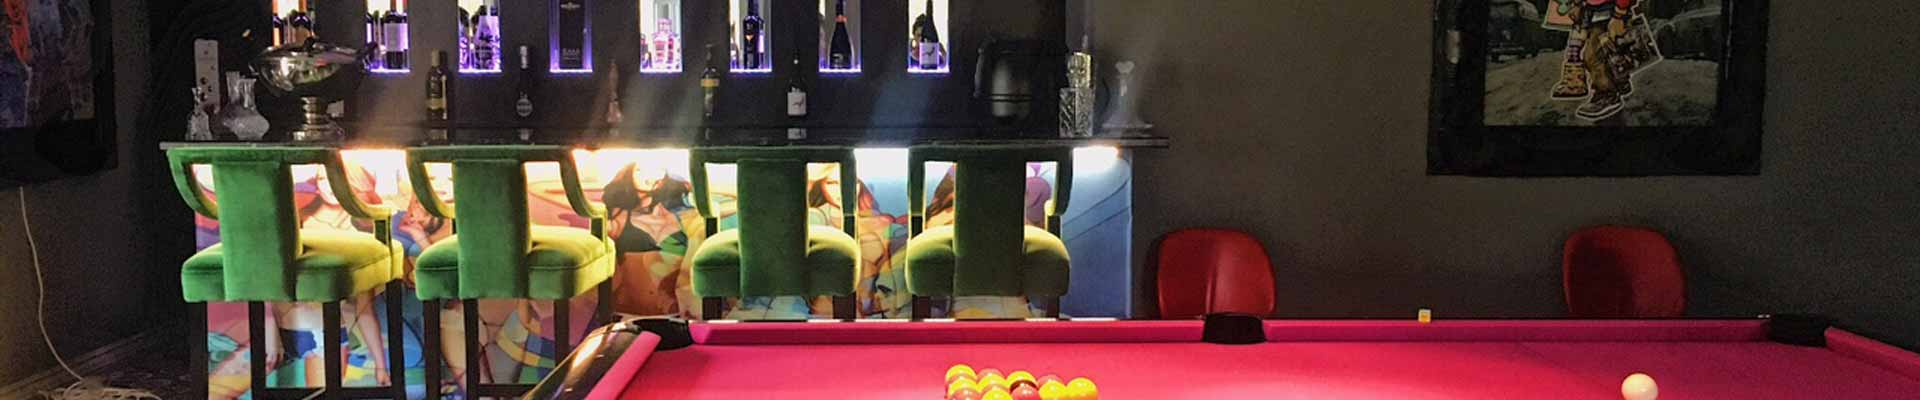 A photo of the snooker and bar area at The Gart